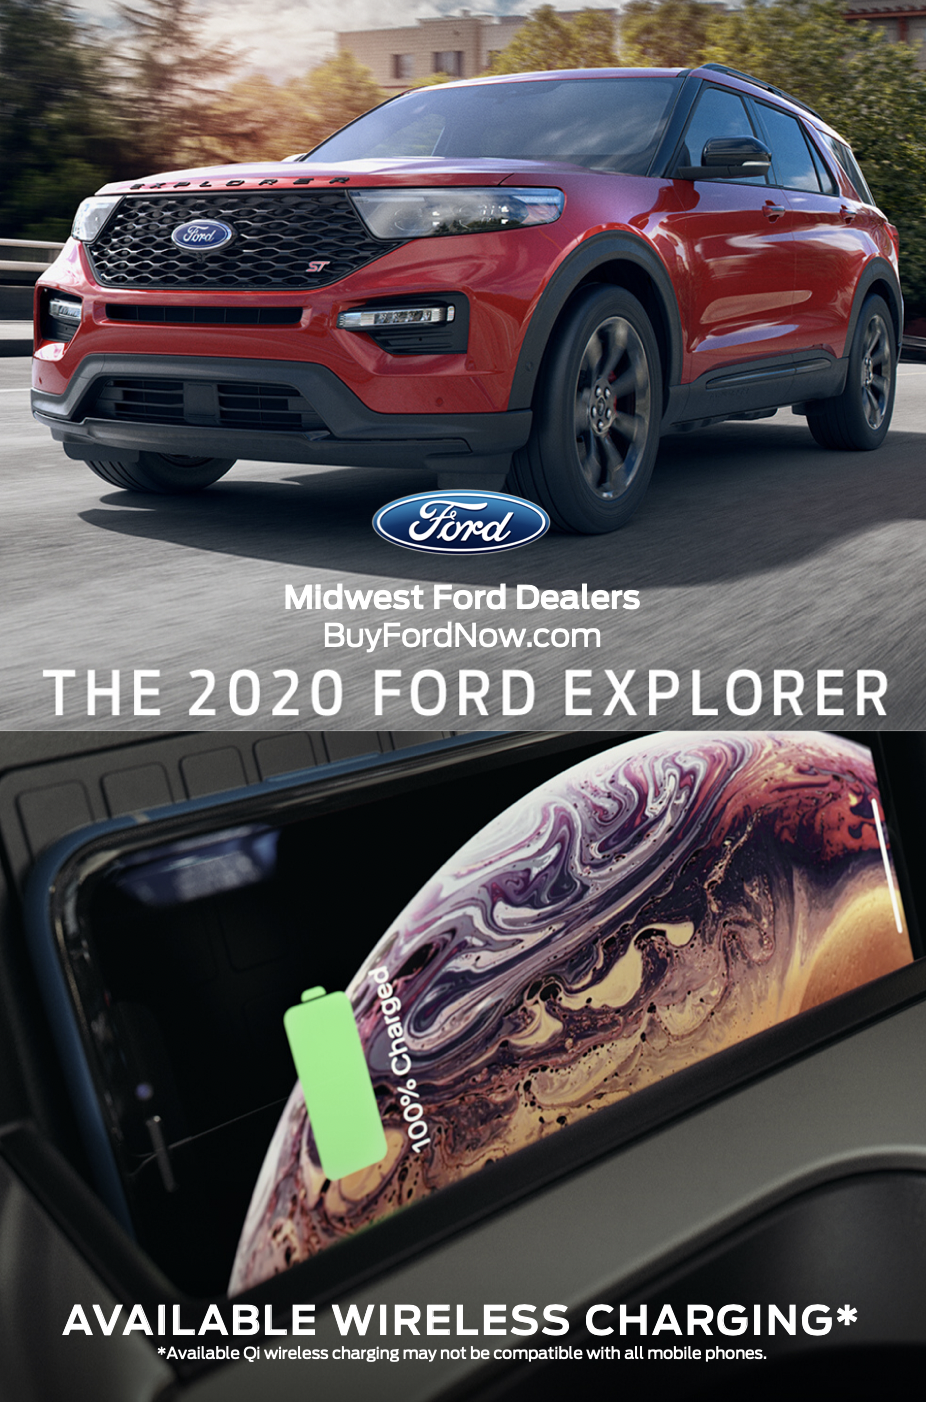 Pin By Bev Nuss On Beverly Nuss In 2020 Ford Explorer 2020 Ford Explorer Ford Motor